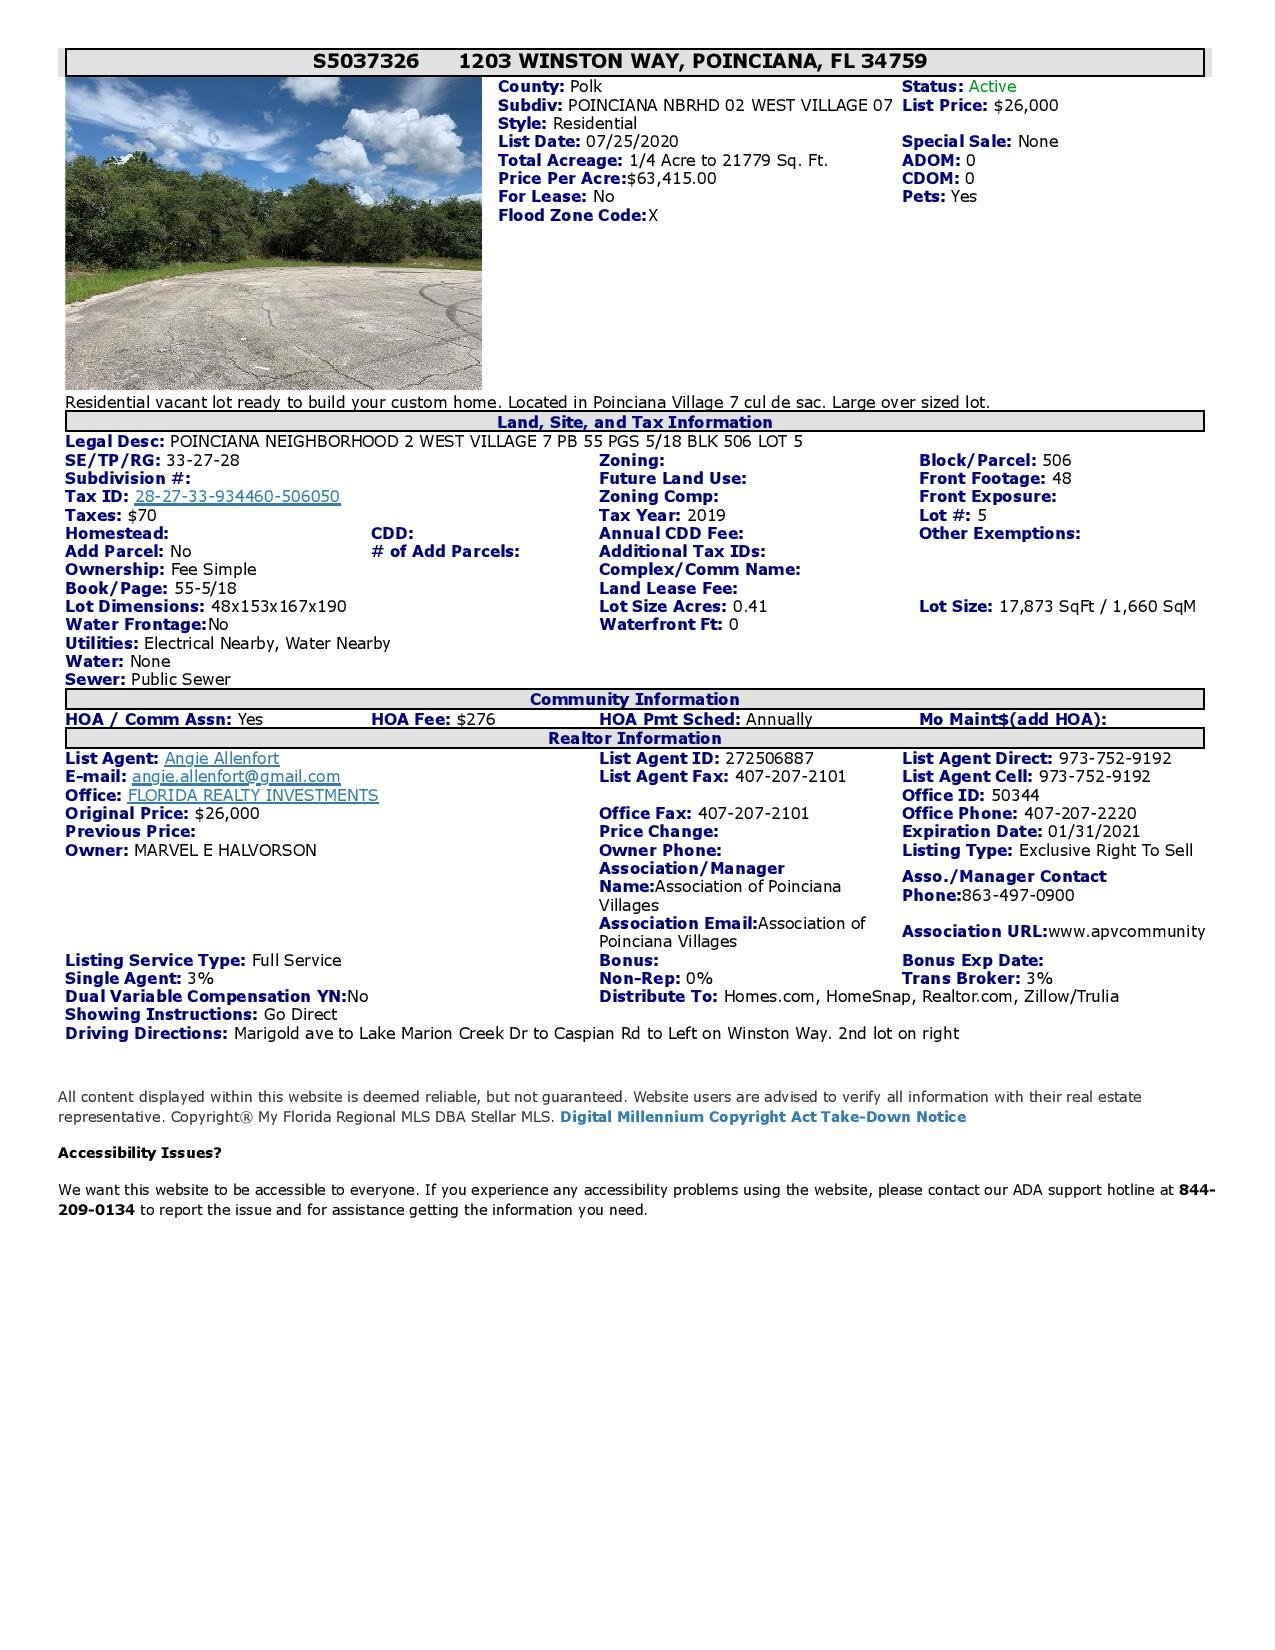 1203 Winston Way Poinciana FL 34759 Vacant Land